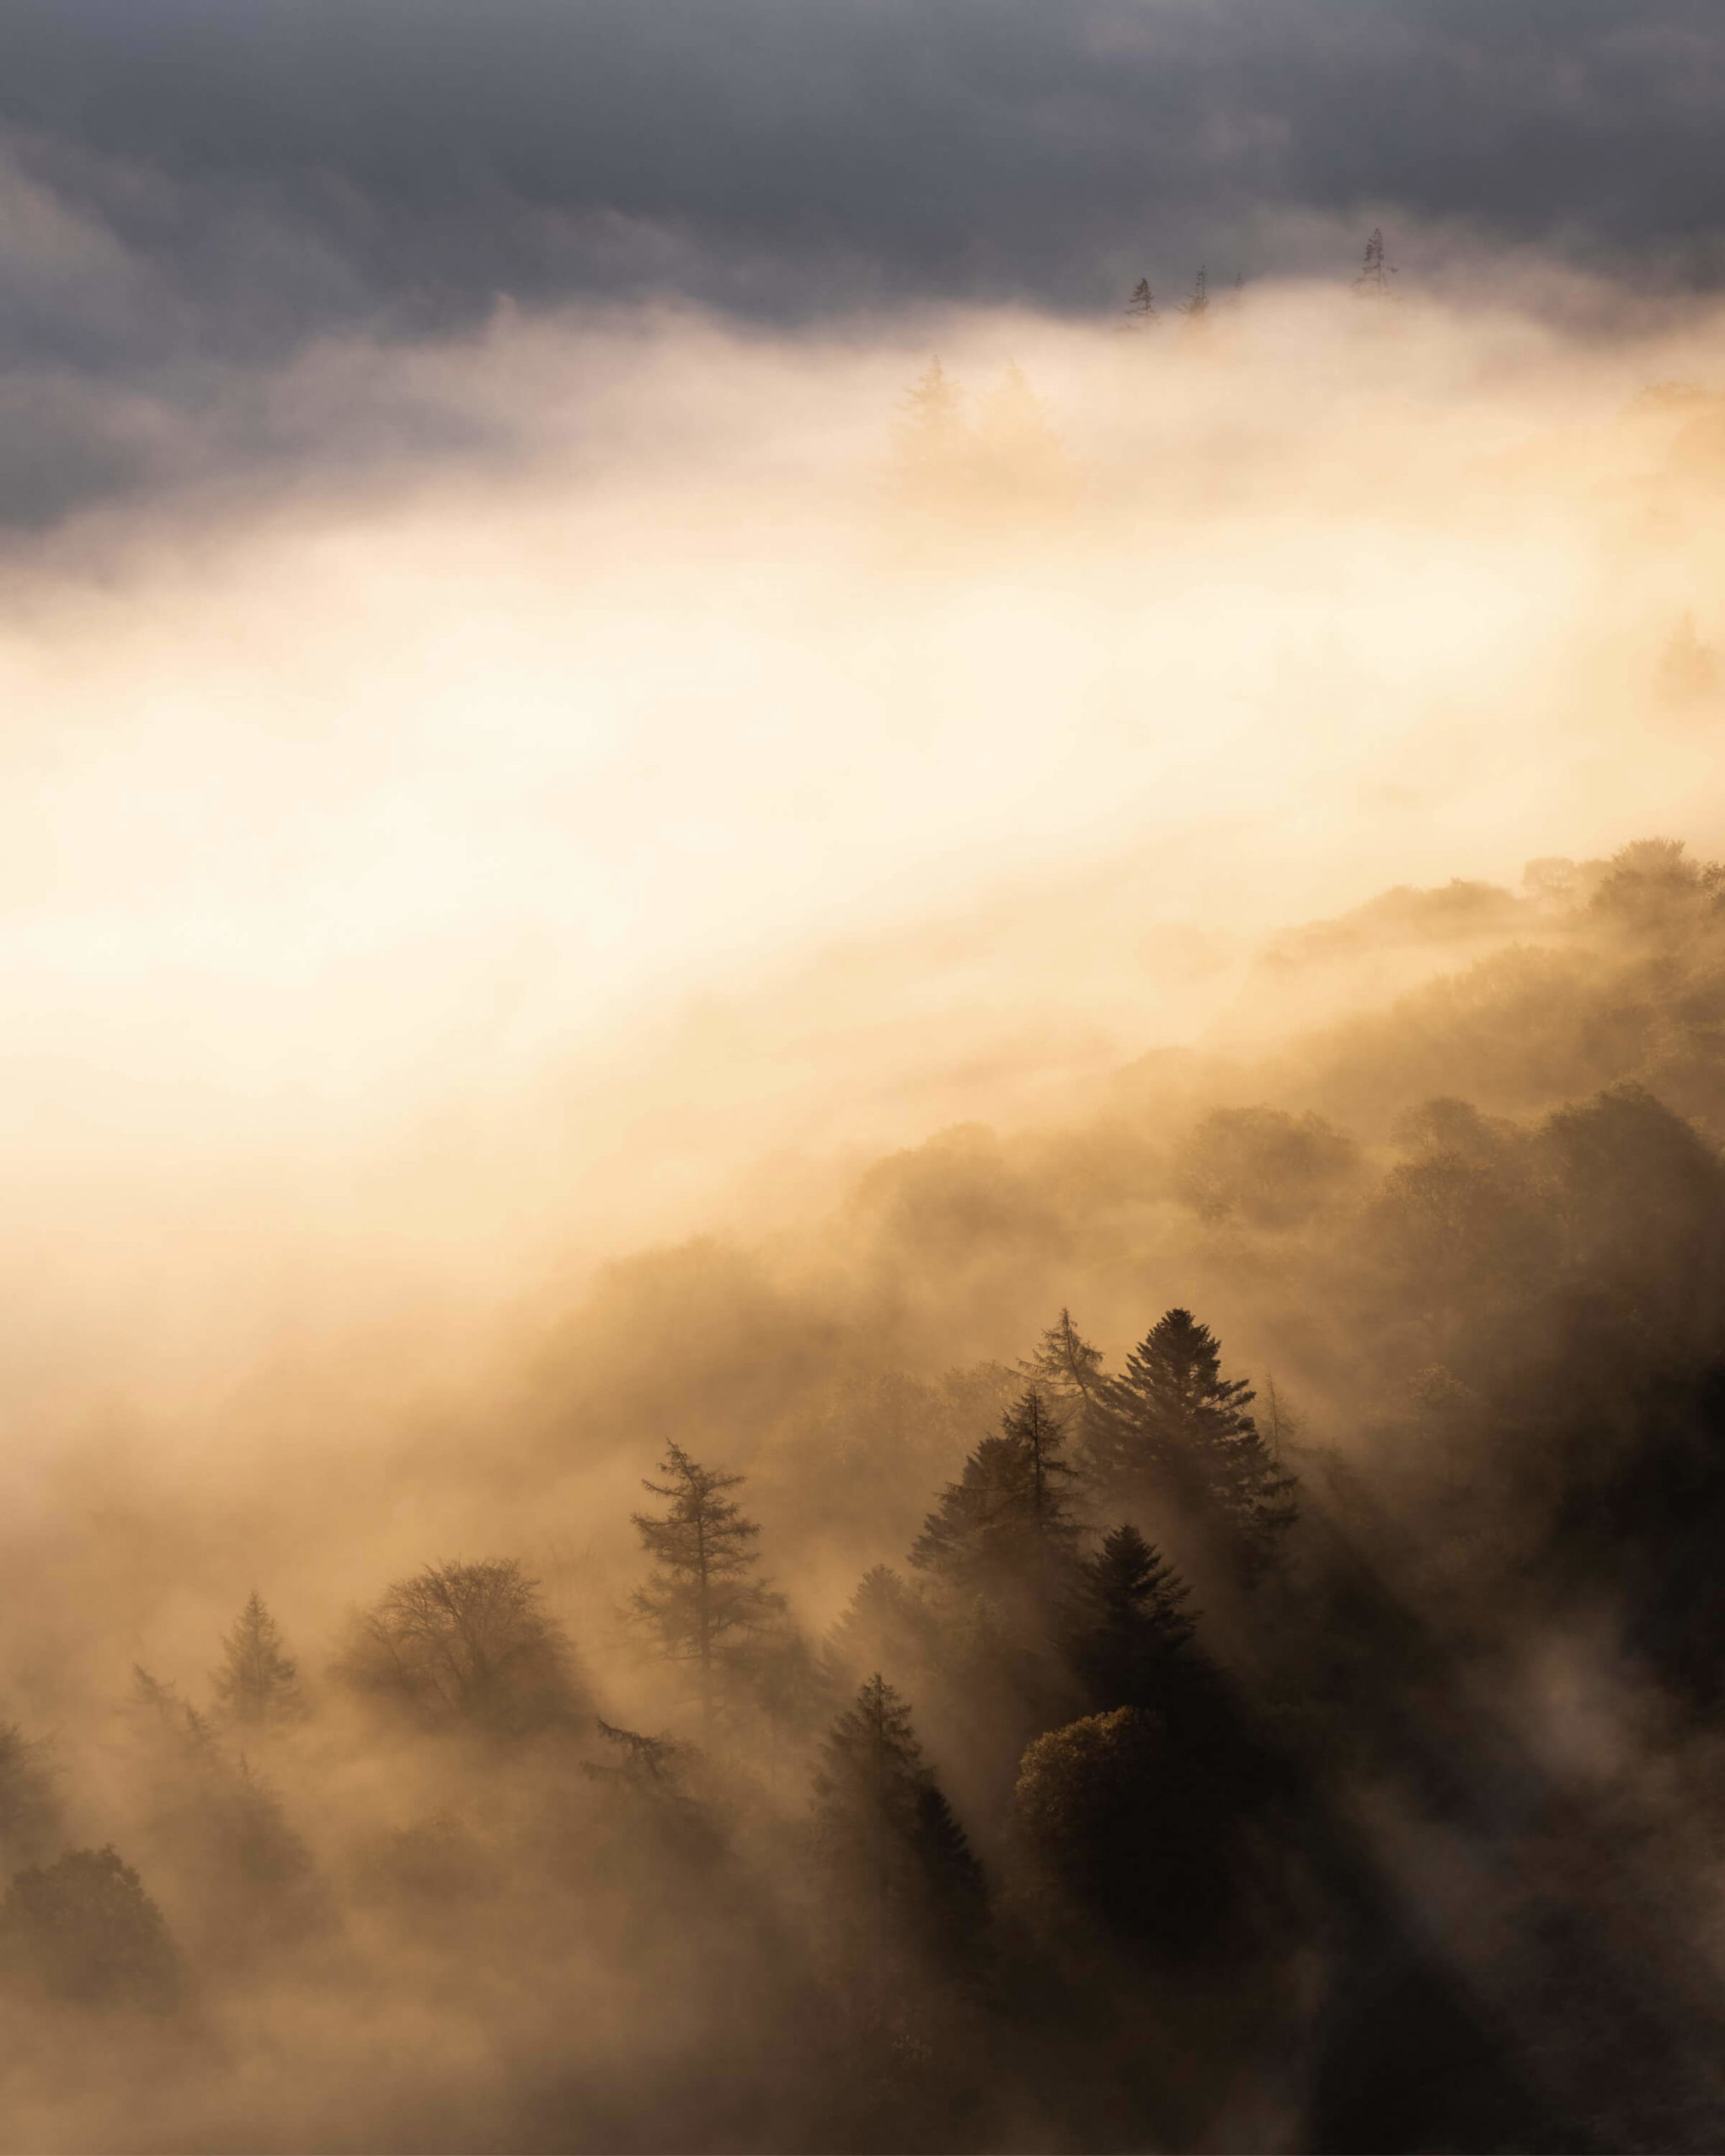 From the summit of a mountain, the morning sun ignites a whole valley and turns the low cloud golden and bright. Light streams through the treeline and creates dramatic shapes and lines.